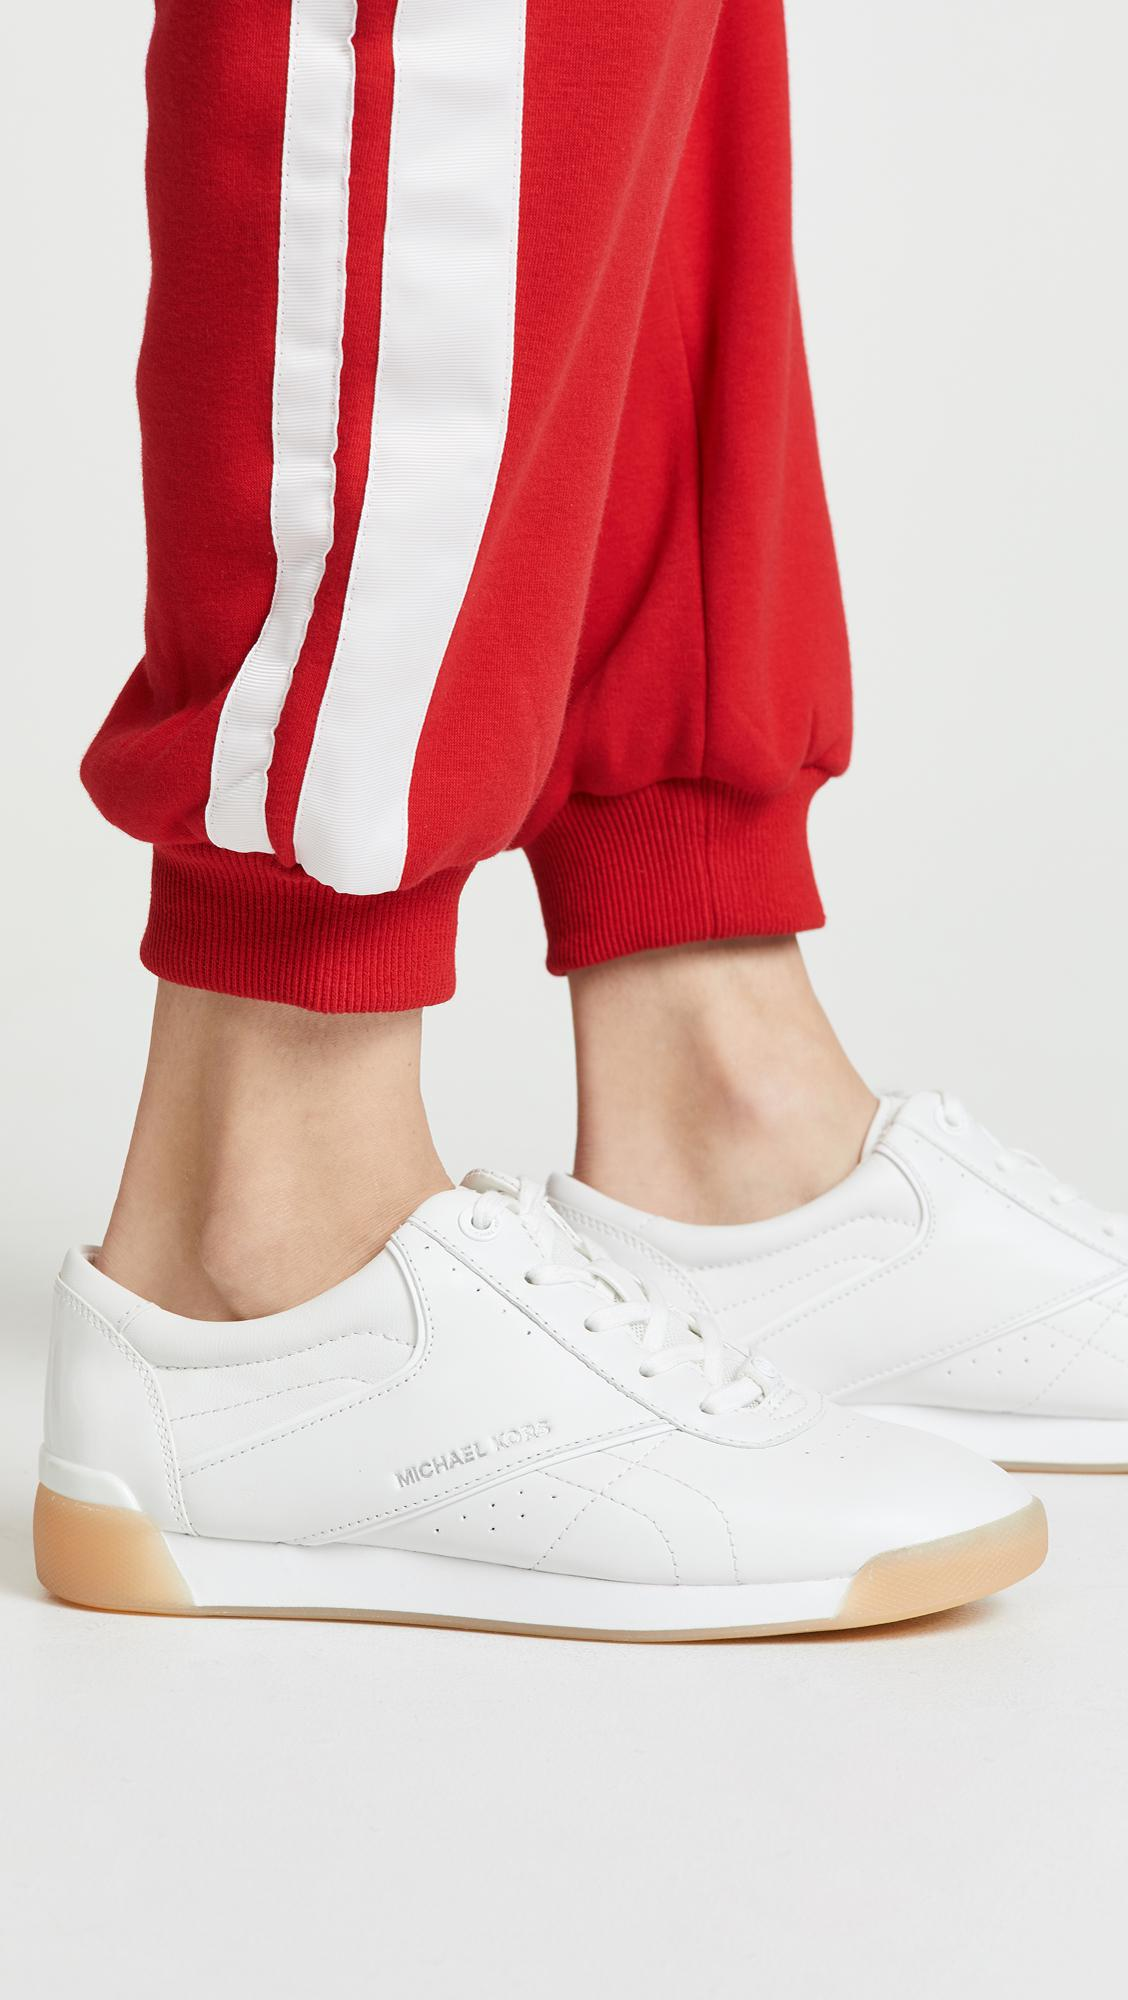 MICHAEL Michael Kors Addie Lace Up Sneakers in White